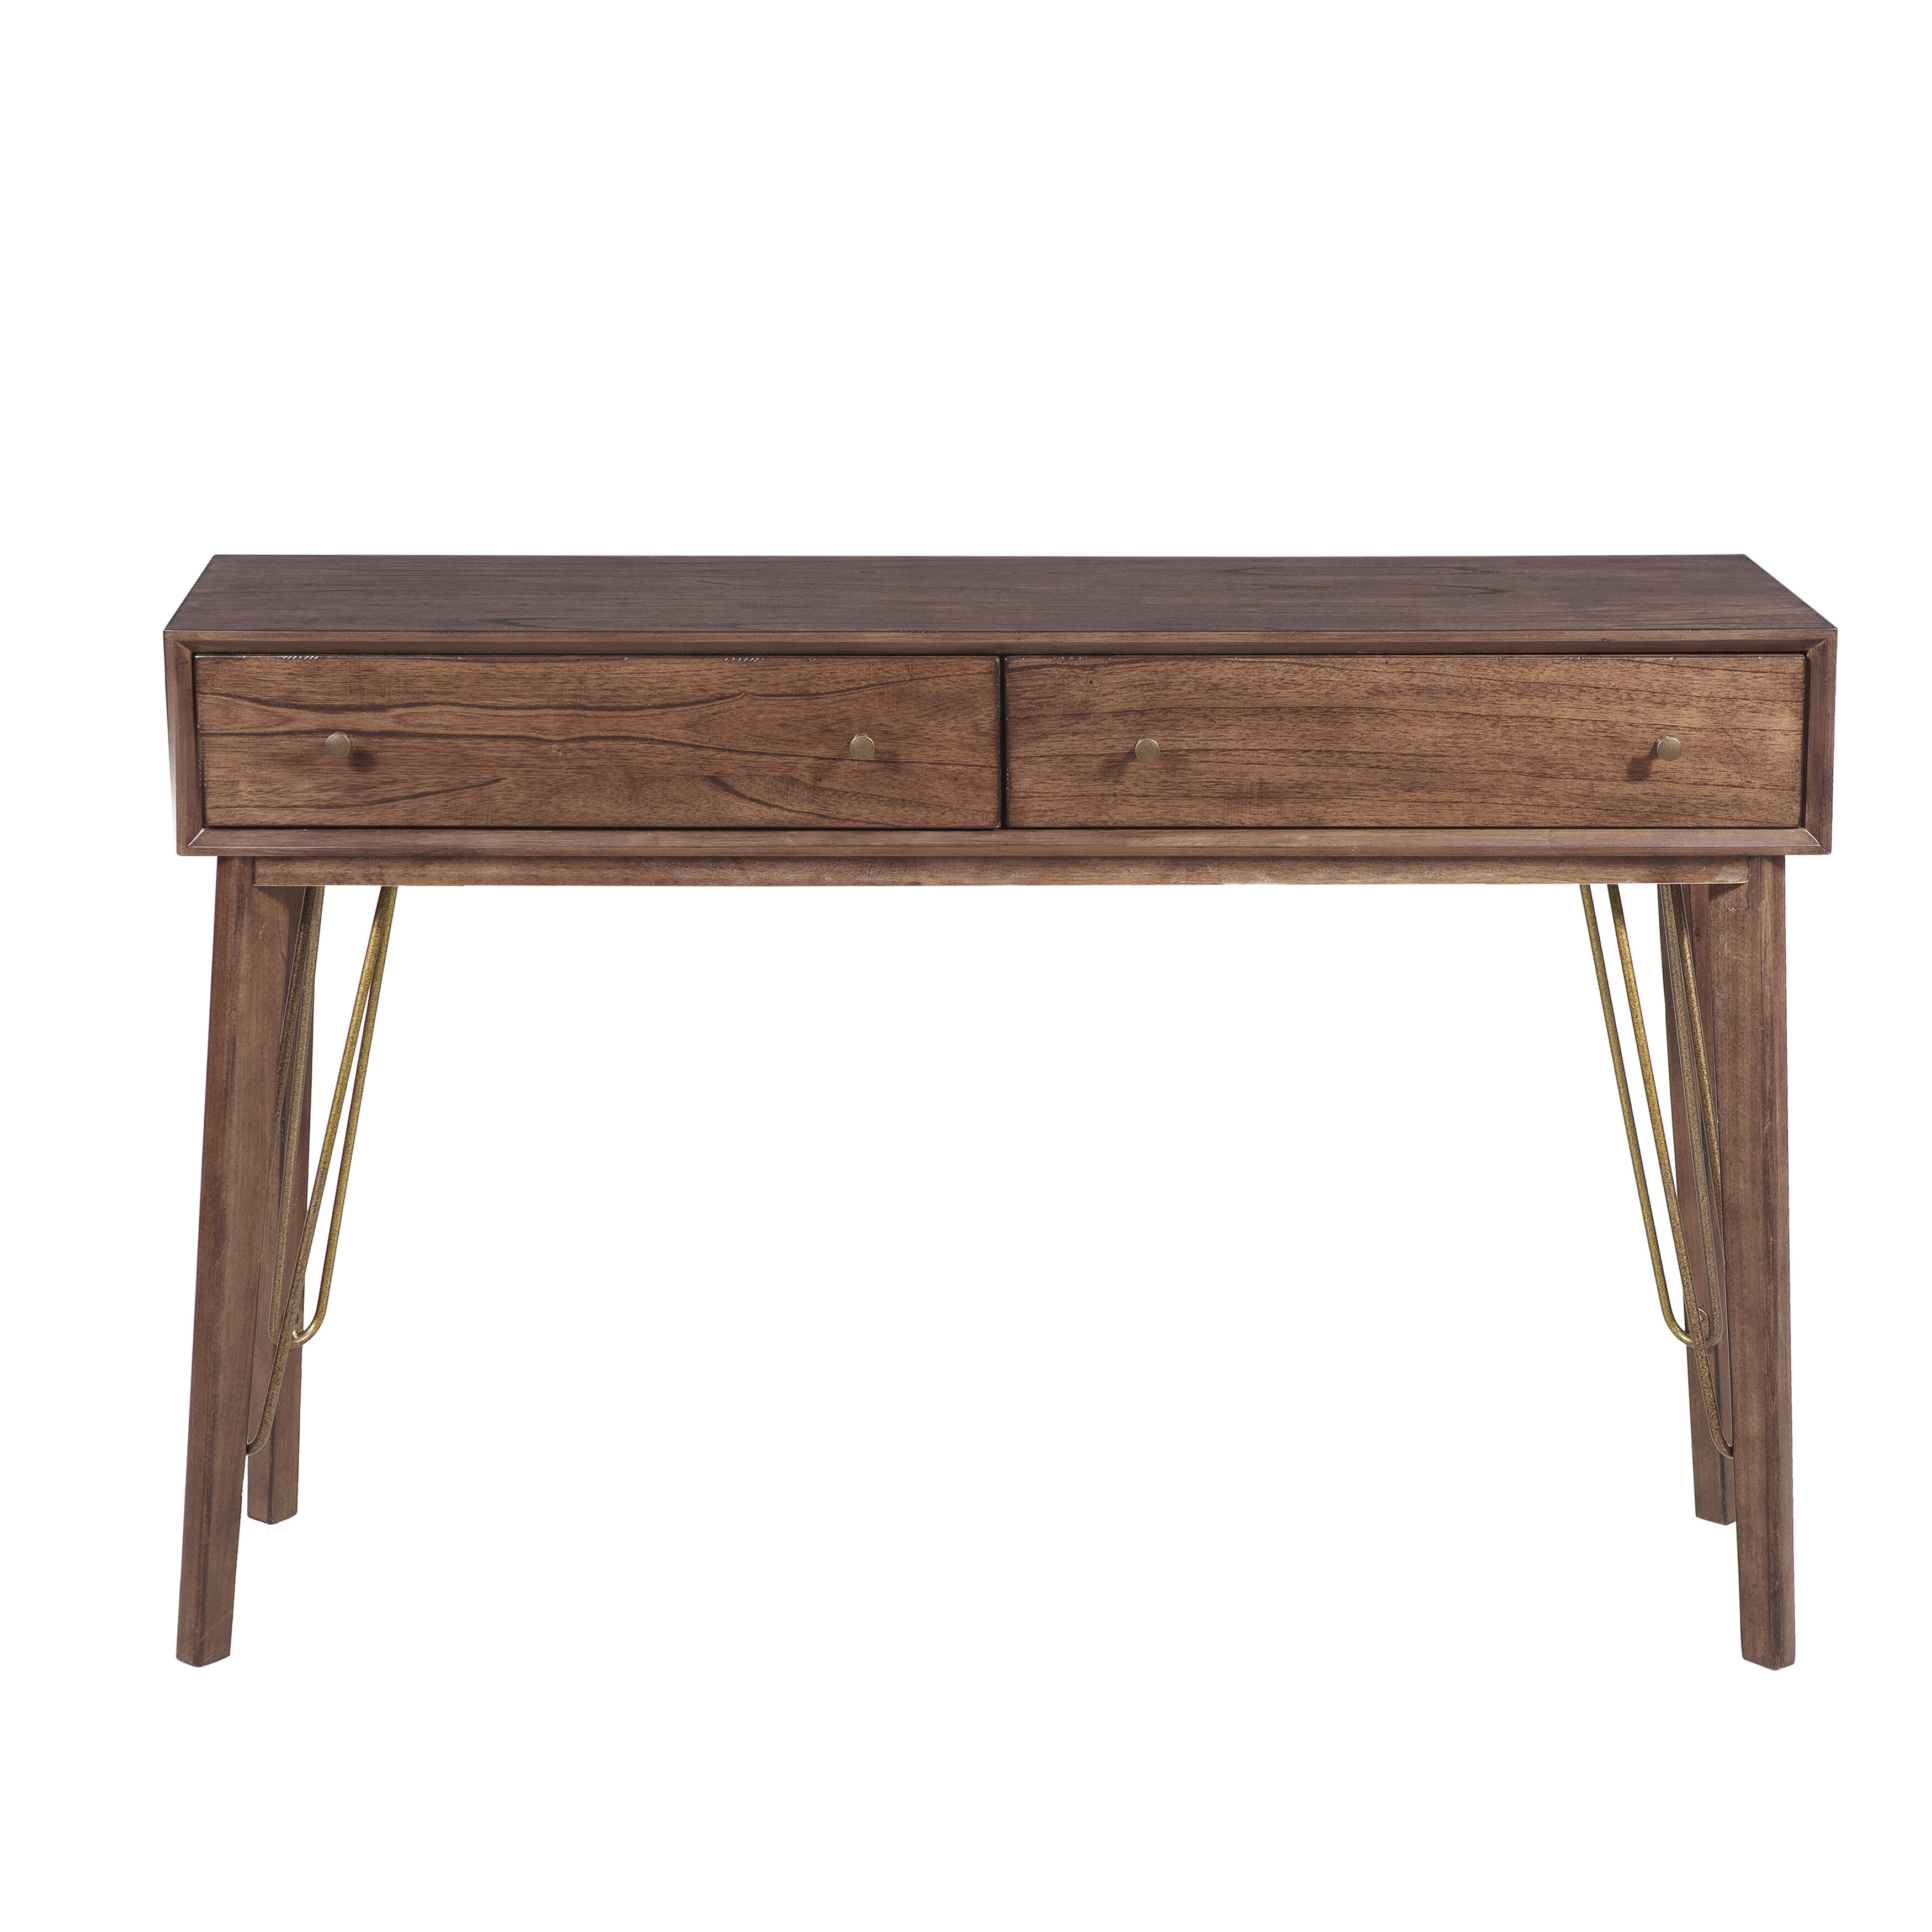 George Oliver Verville Mid Century Modern Two Drawer Accent Storage Console Table Reviews Wayfair